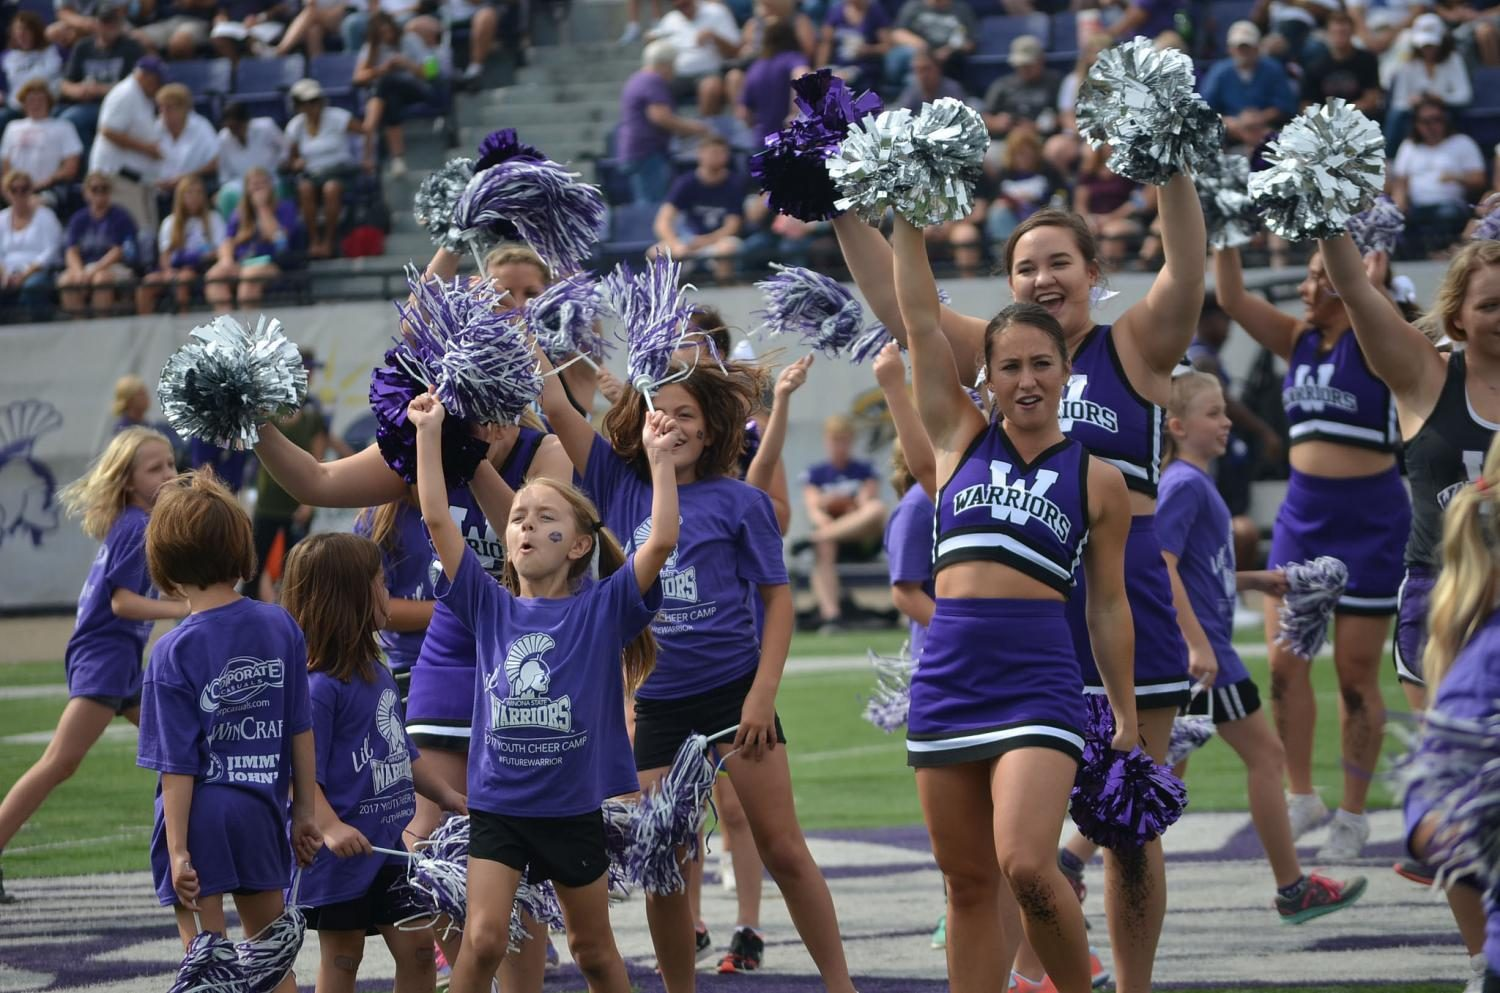 Cheerleader+Morgan+Anderson+cheers+along+side+campers+from+the+annual+Warrior+Youth+Cheer+Camp+at+Saturday%2C+Sept.+17%E2%80%99s+football+game.+The+camp+taught+its+65+participants+different+moves+and+lifts+earlier+in+the+day+in+McCown+Gymnasium.+Warrior+Youth+Cheer+Camp+is+offered+to+all+children%2C+kindergarten+through+eighth+grade.